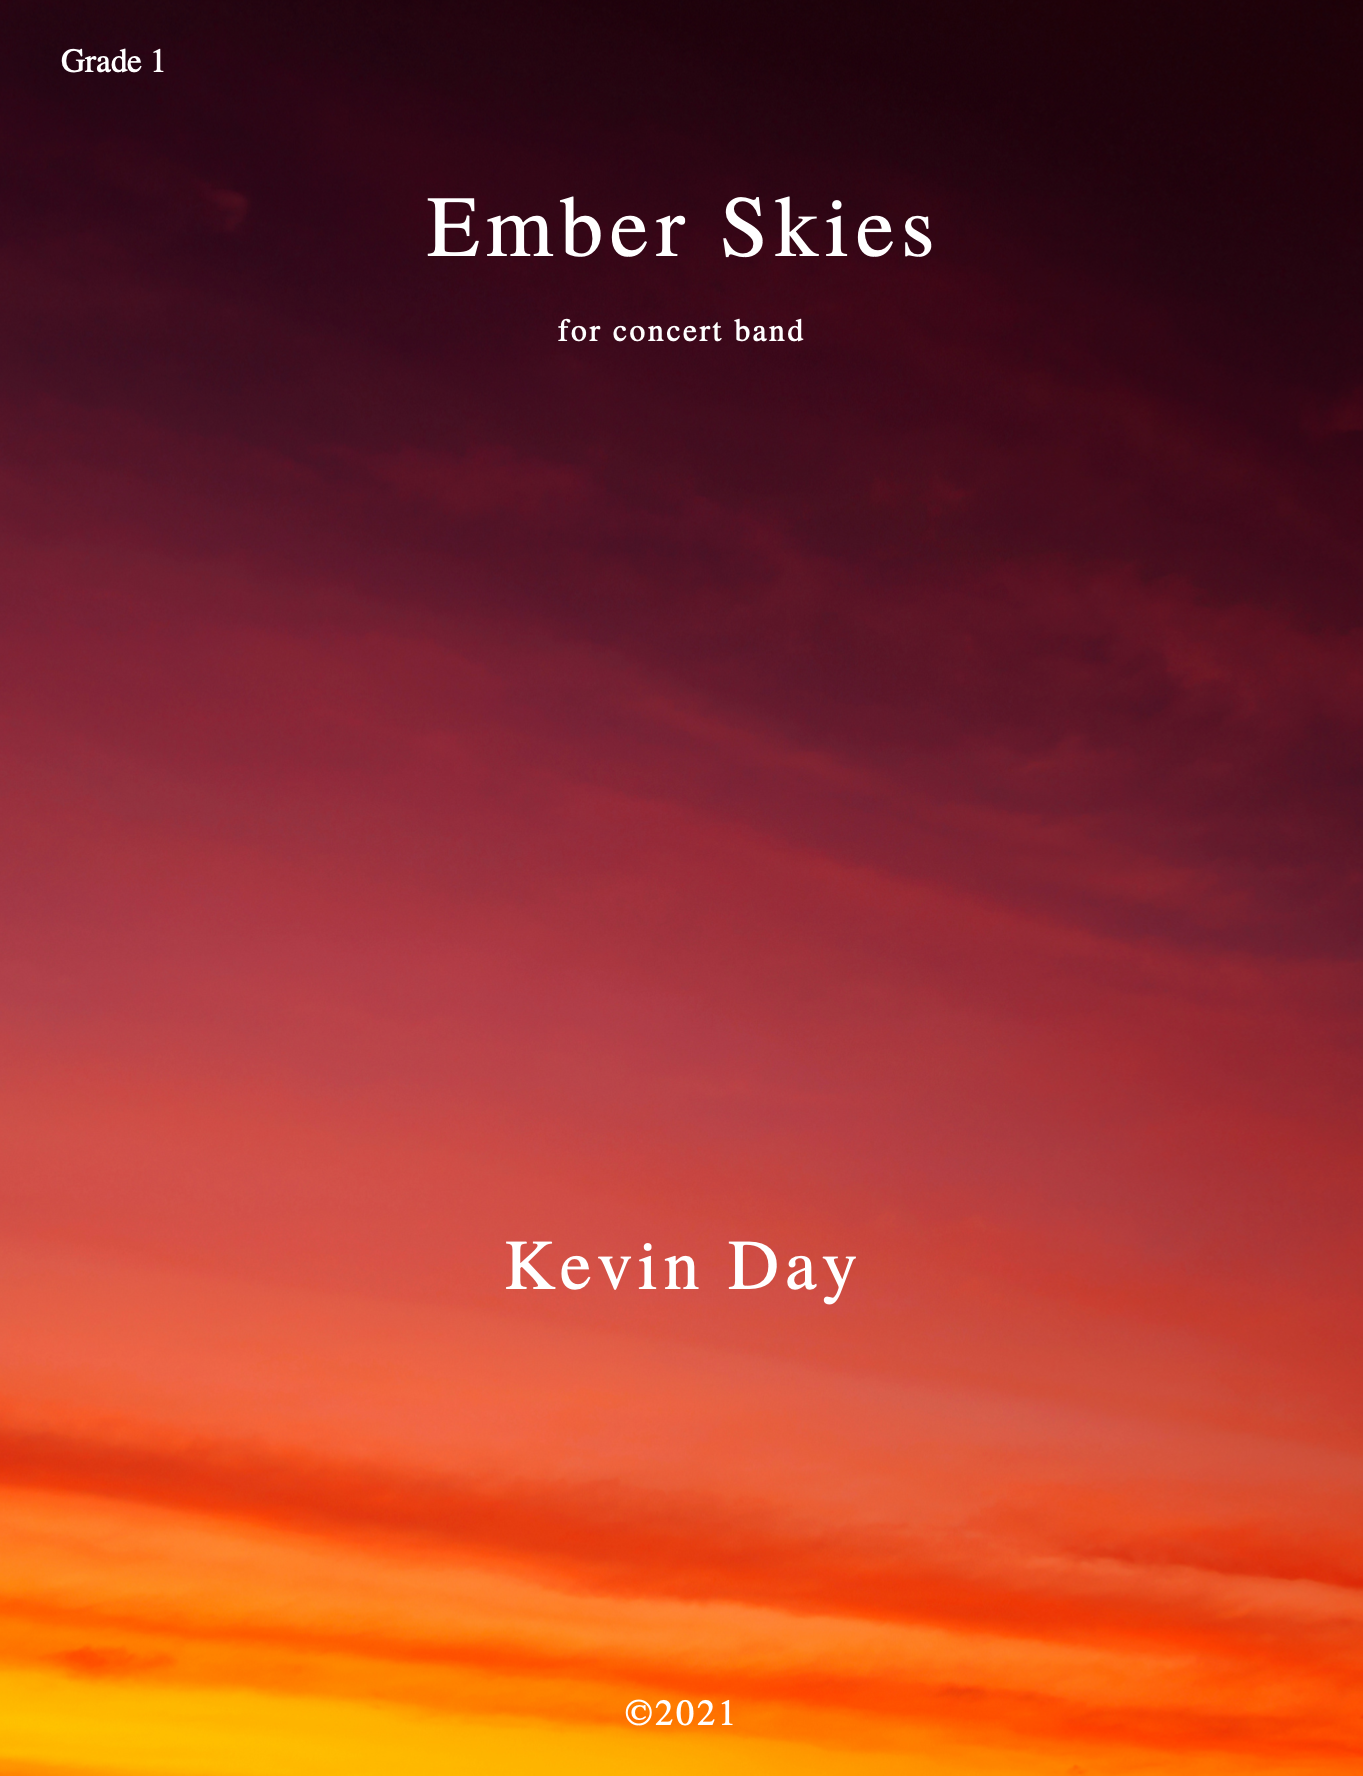 Ember Skies by Kevin Day